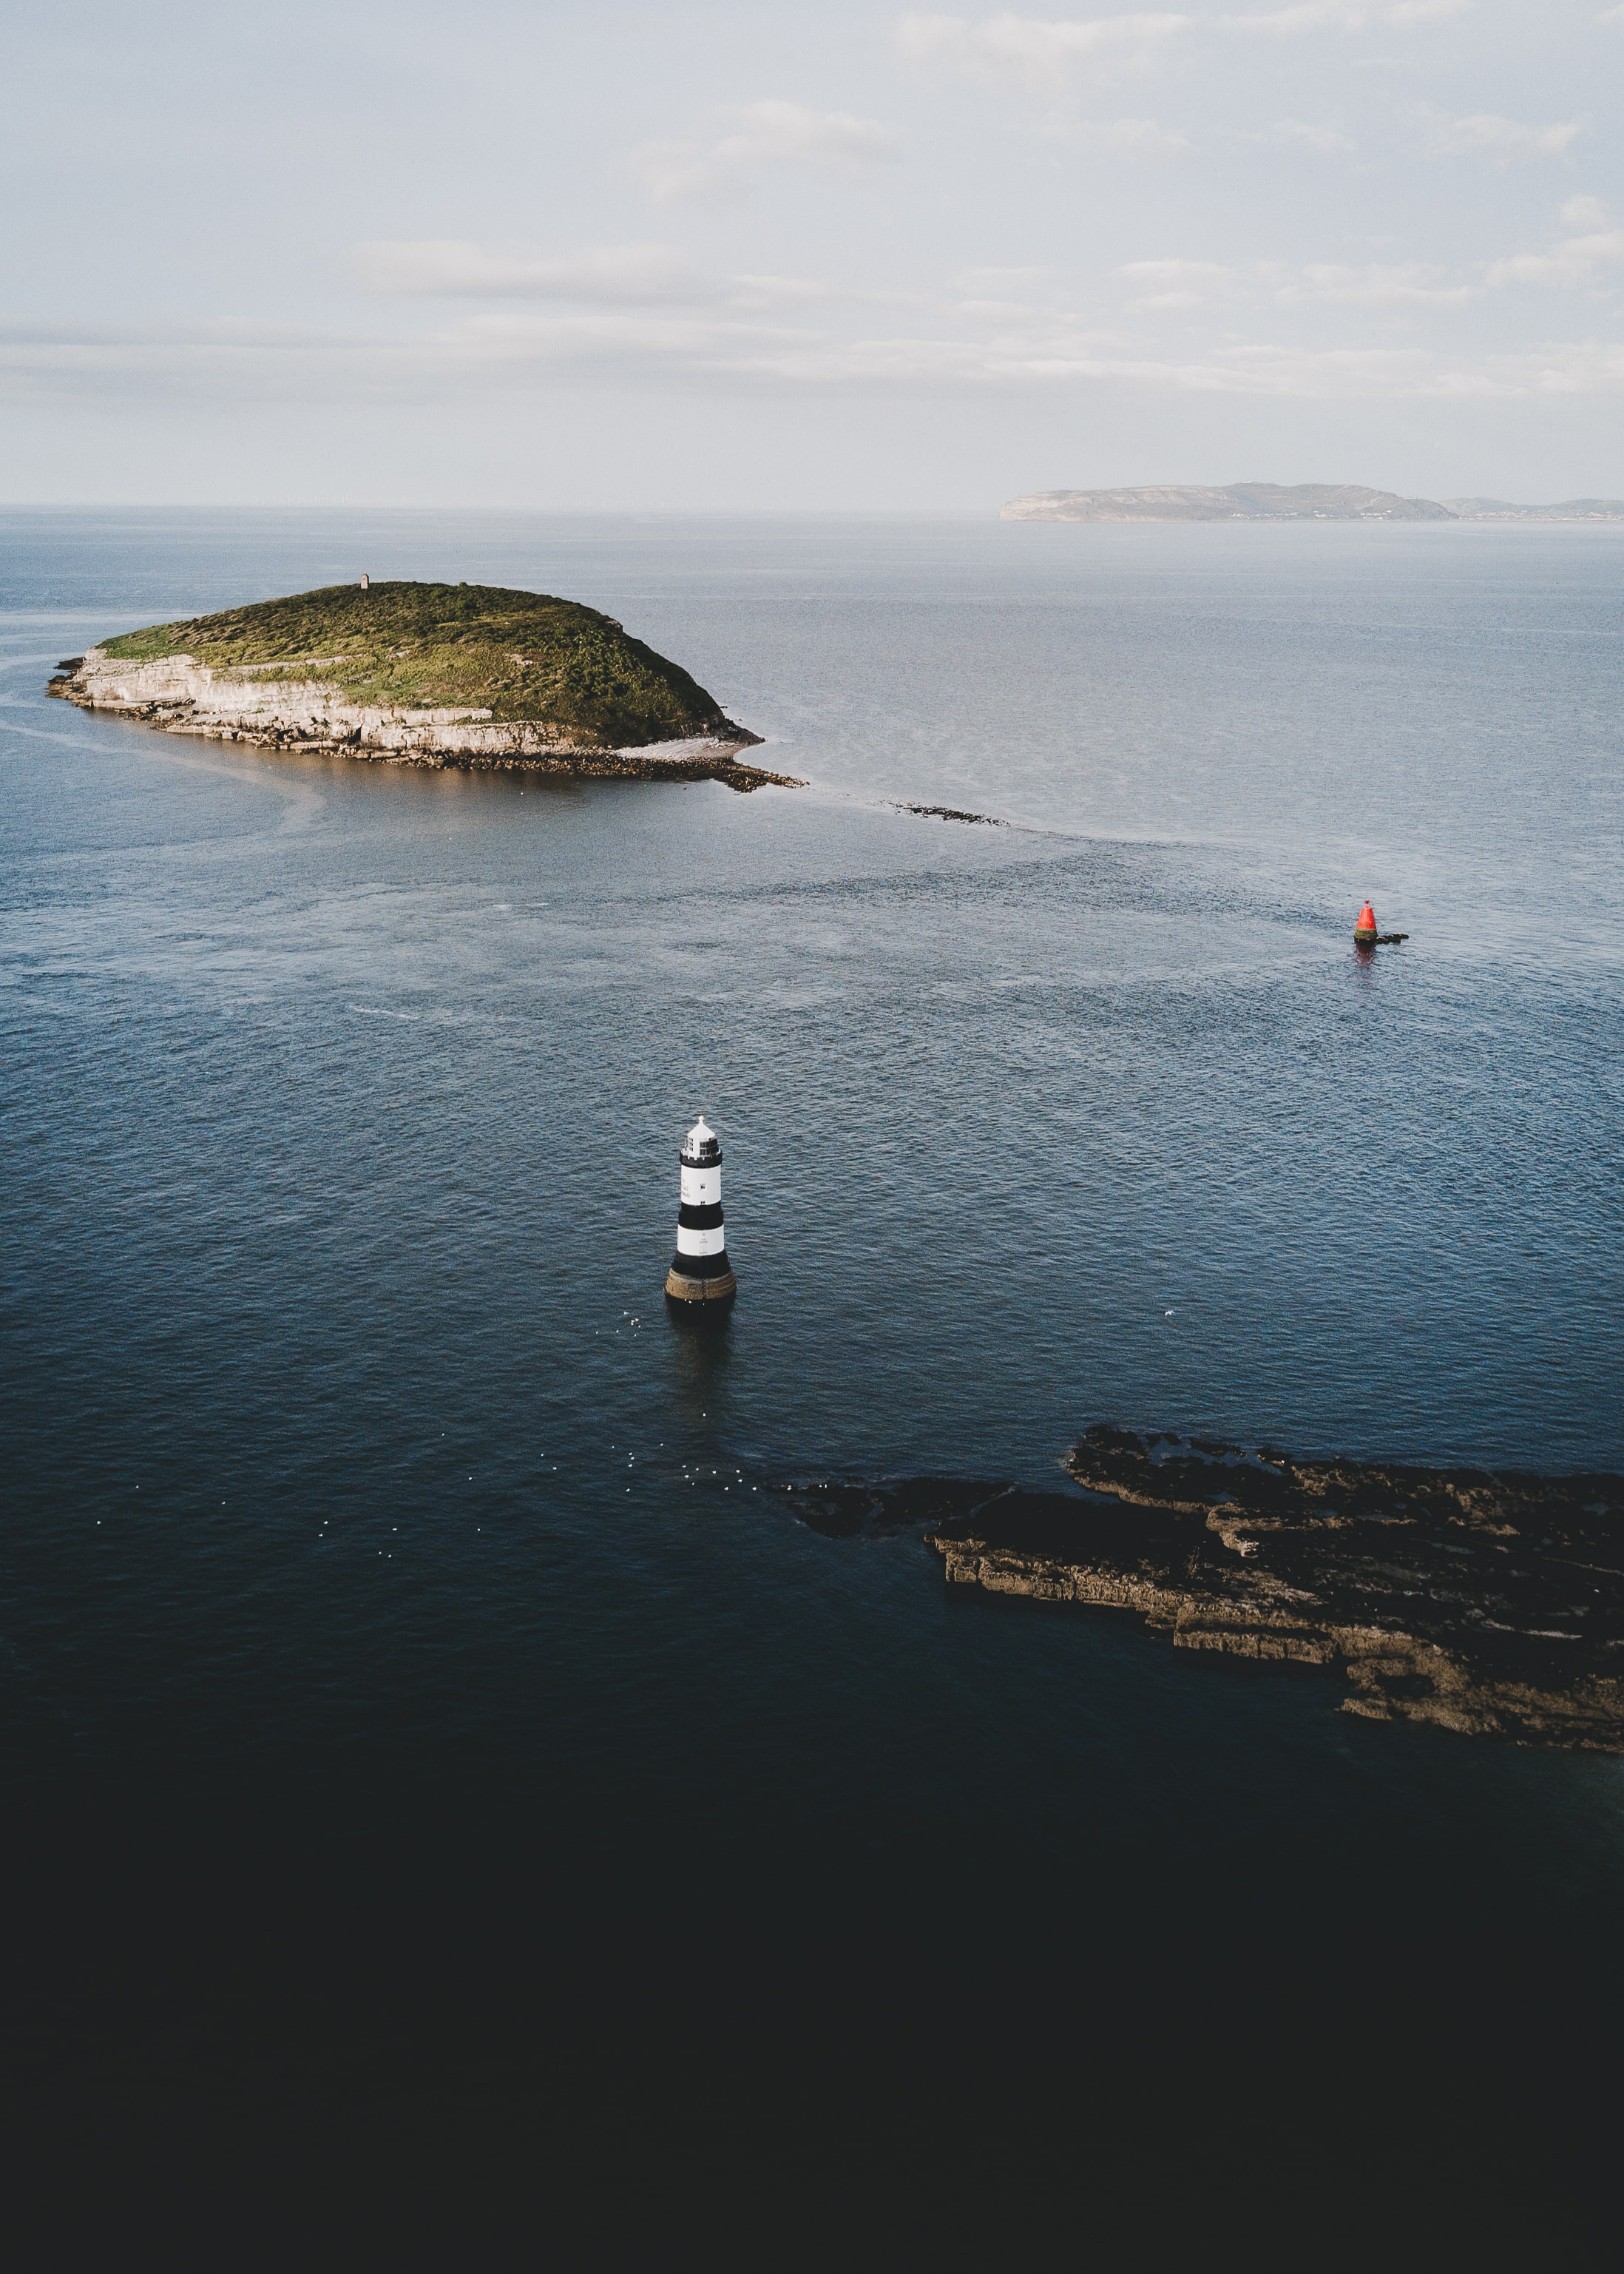 lighthouse surrounded by body of water near island